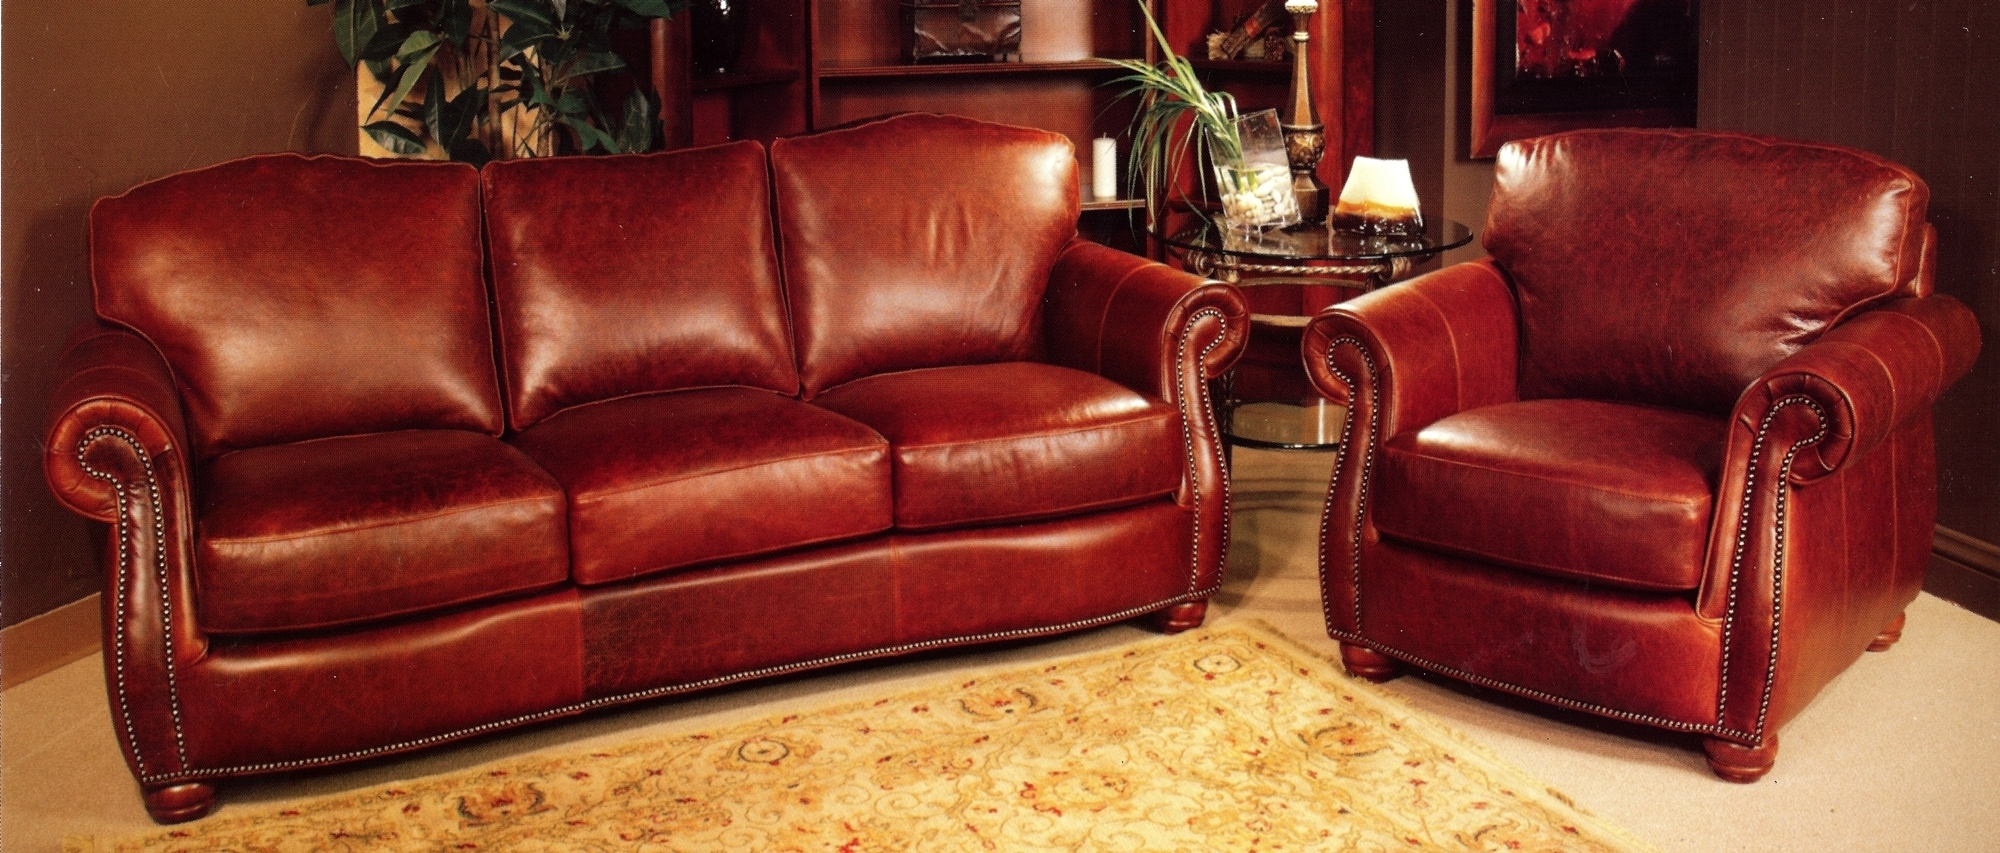 Rustic Red Leather Sofa And Rustic Red Leather Chair With Rustic For Red Leather Sofas (View 11 of 15)